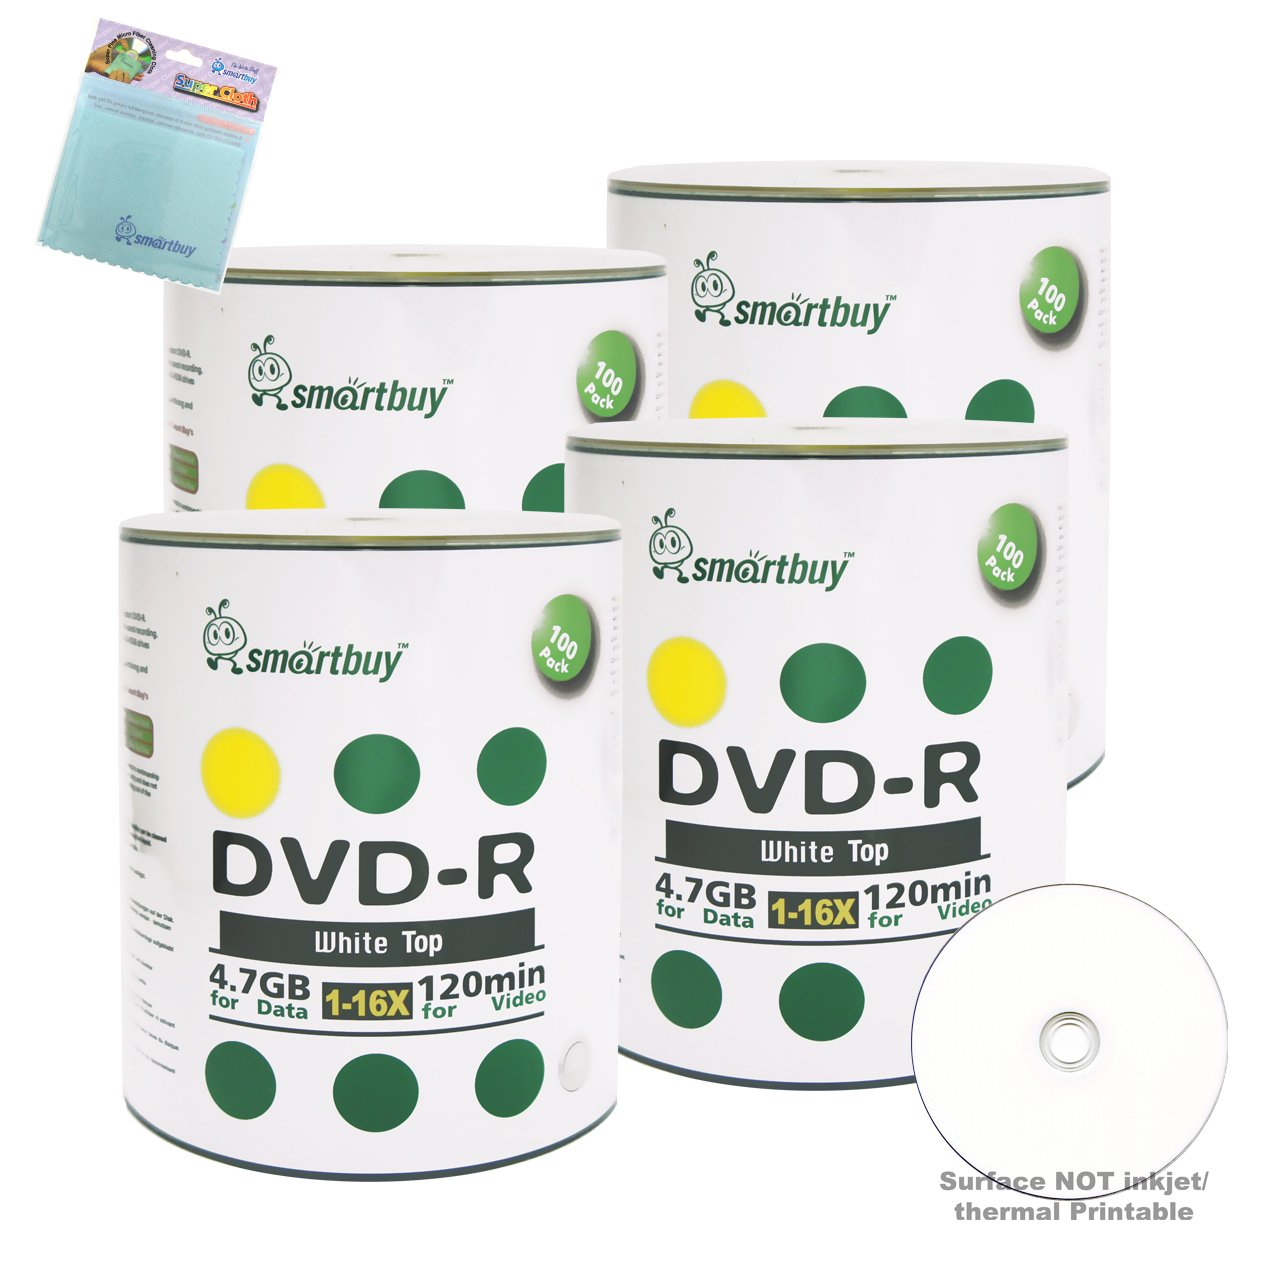 Smartbuy 400-disc 4.7GB/120min 16x DVD-R White Top Blank Media Record Disc + Free Micro Fiber Cloth